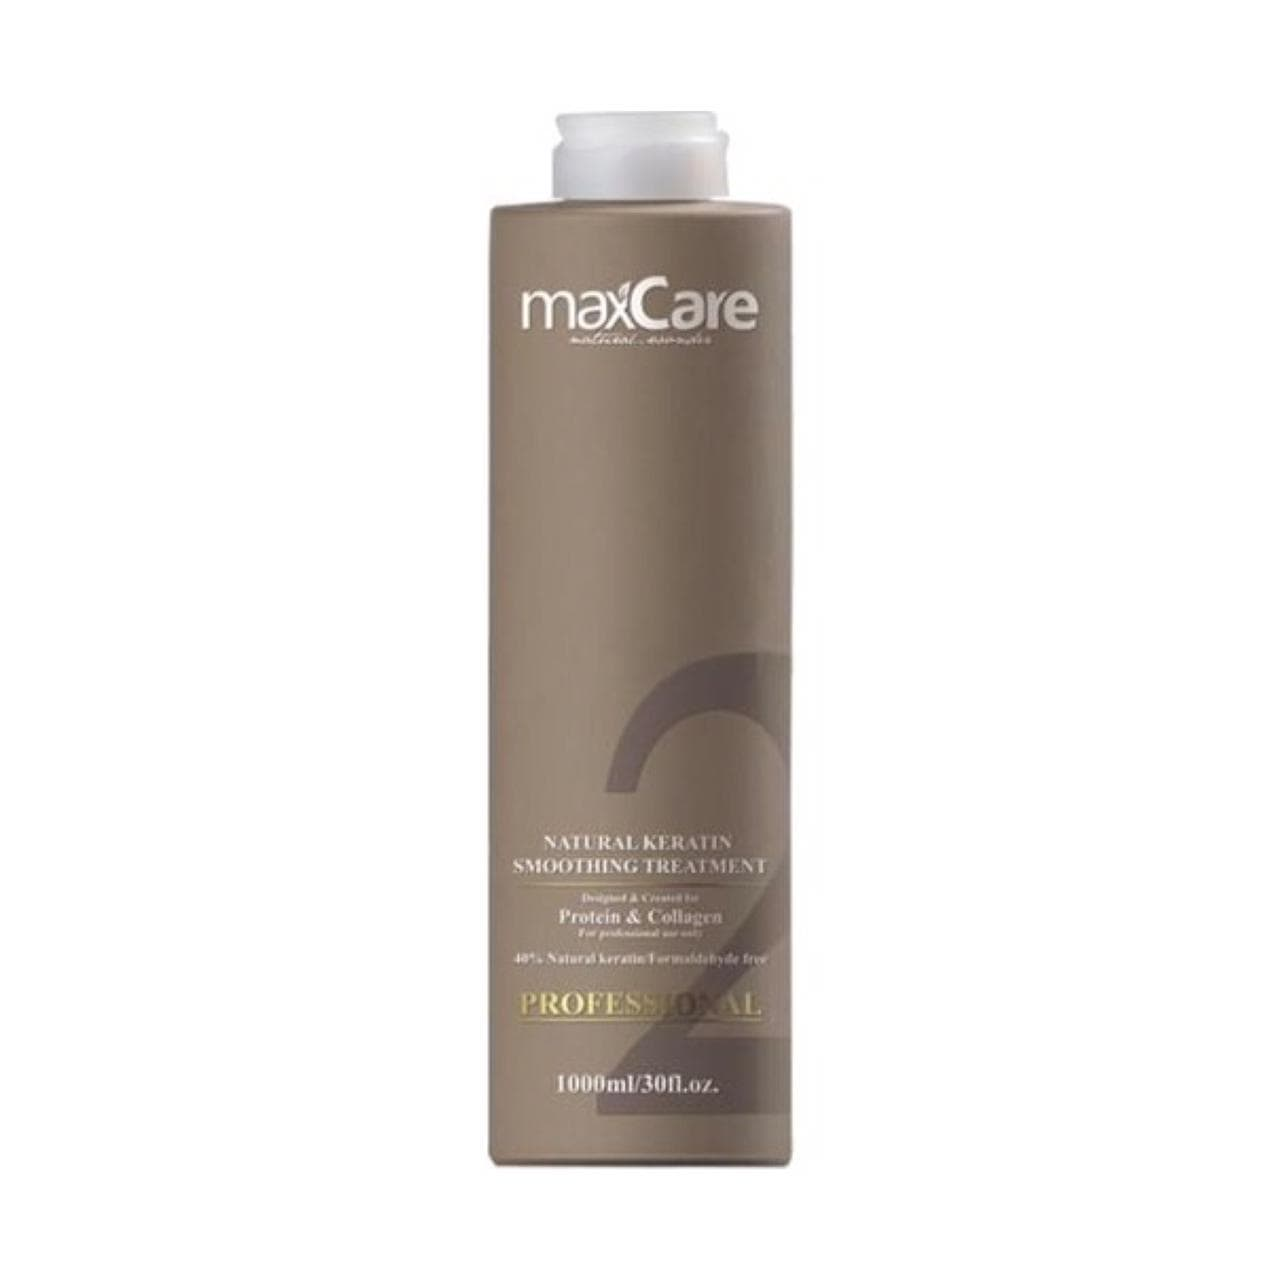 MaxCare Professional Natural Keratin Smoothing Treatment Step 2 1000ml